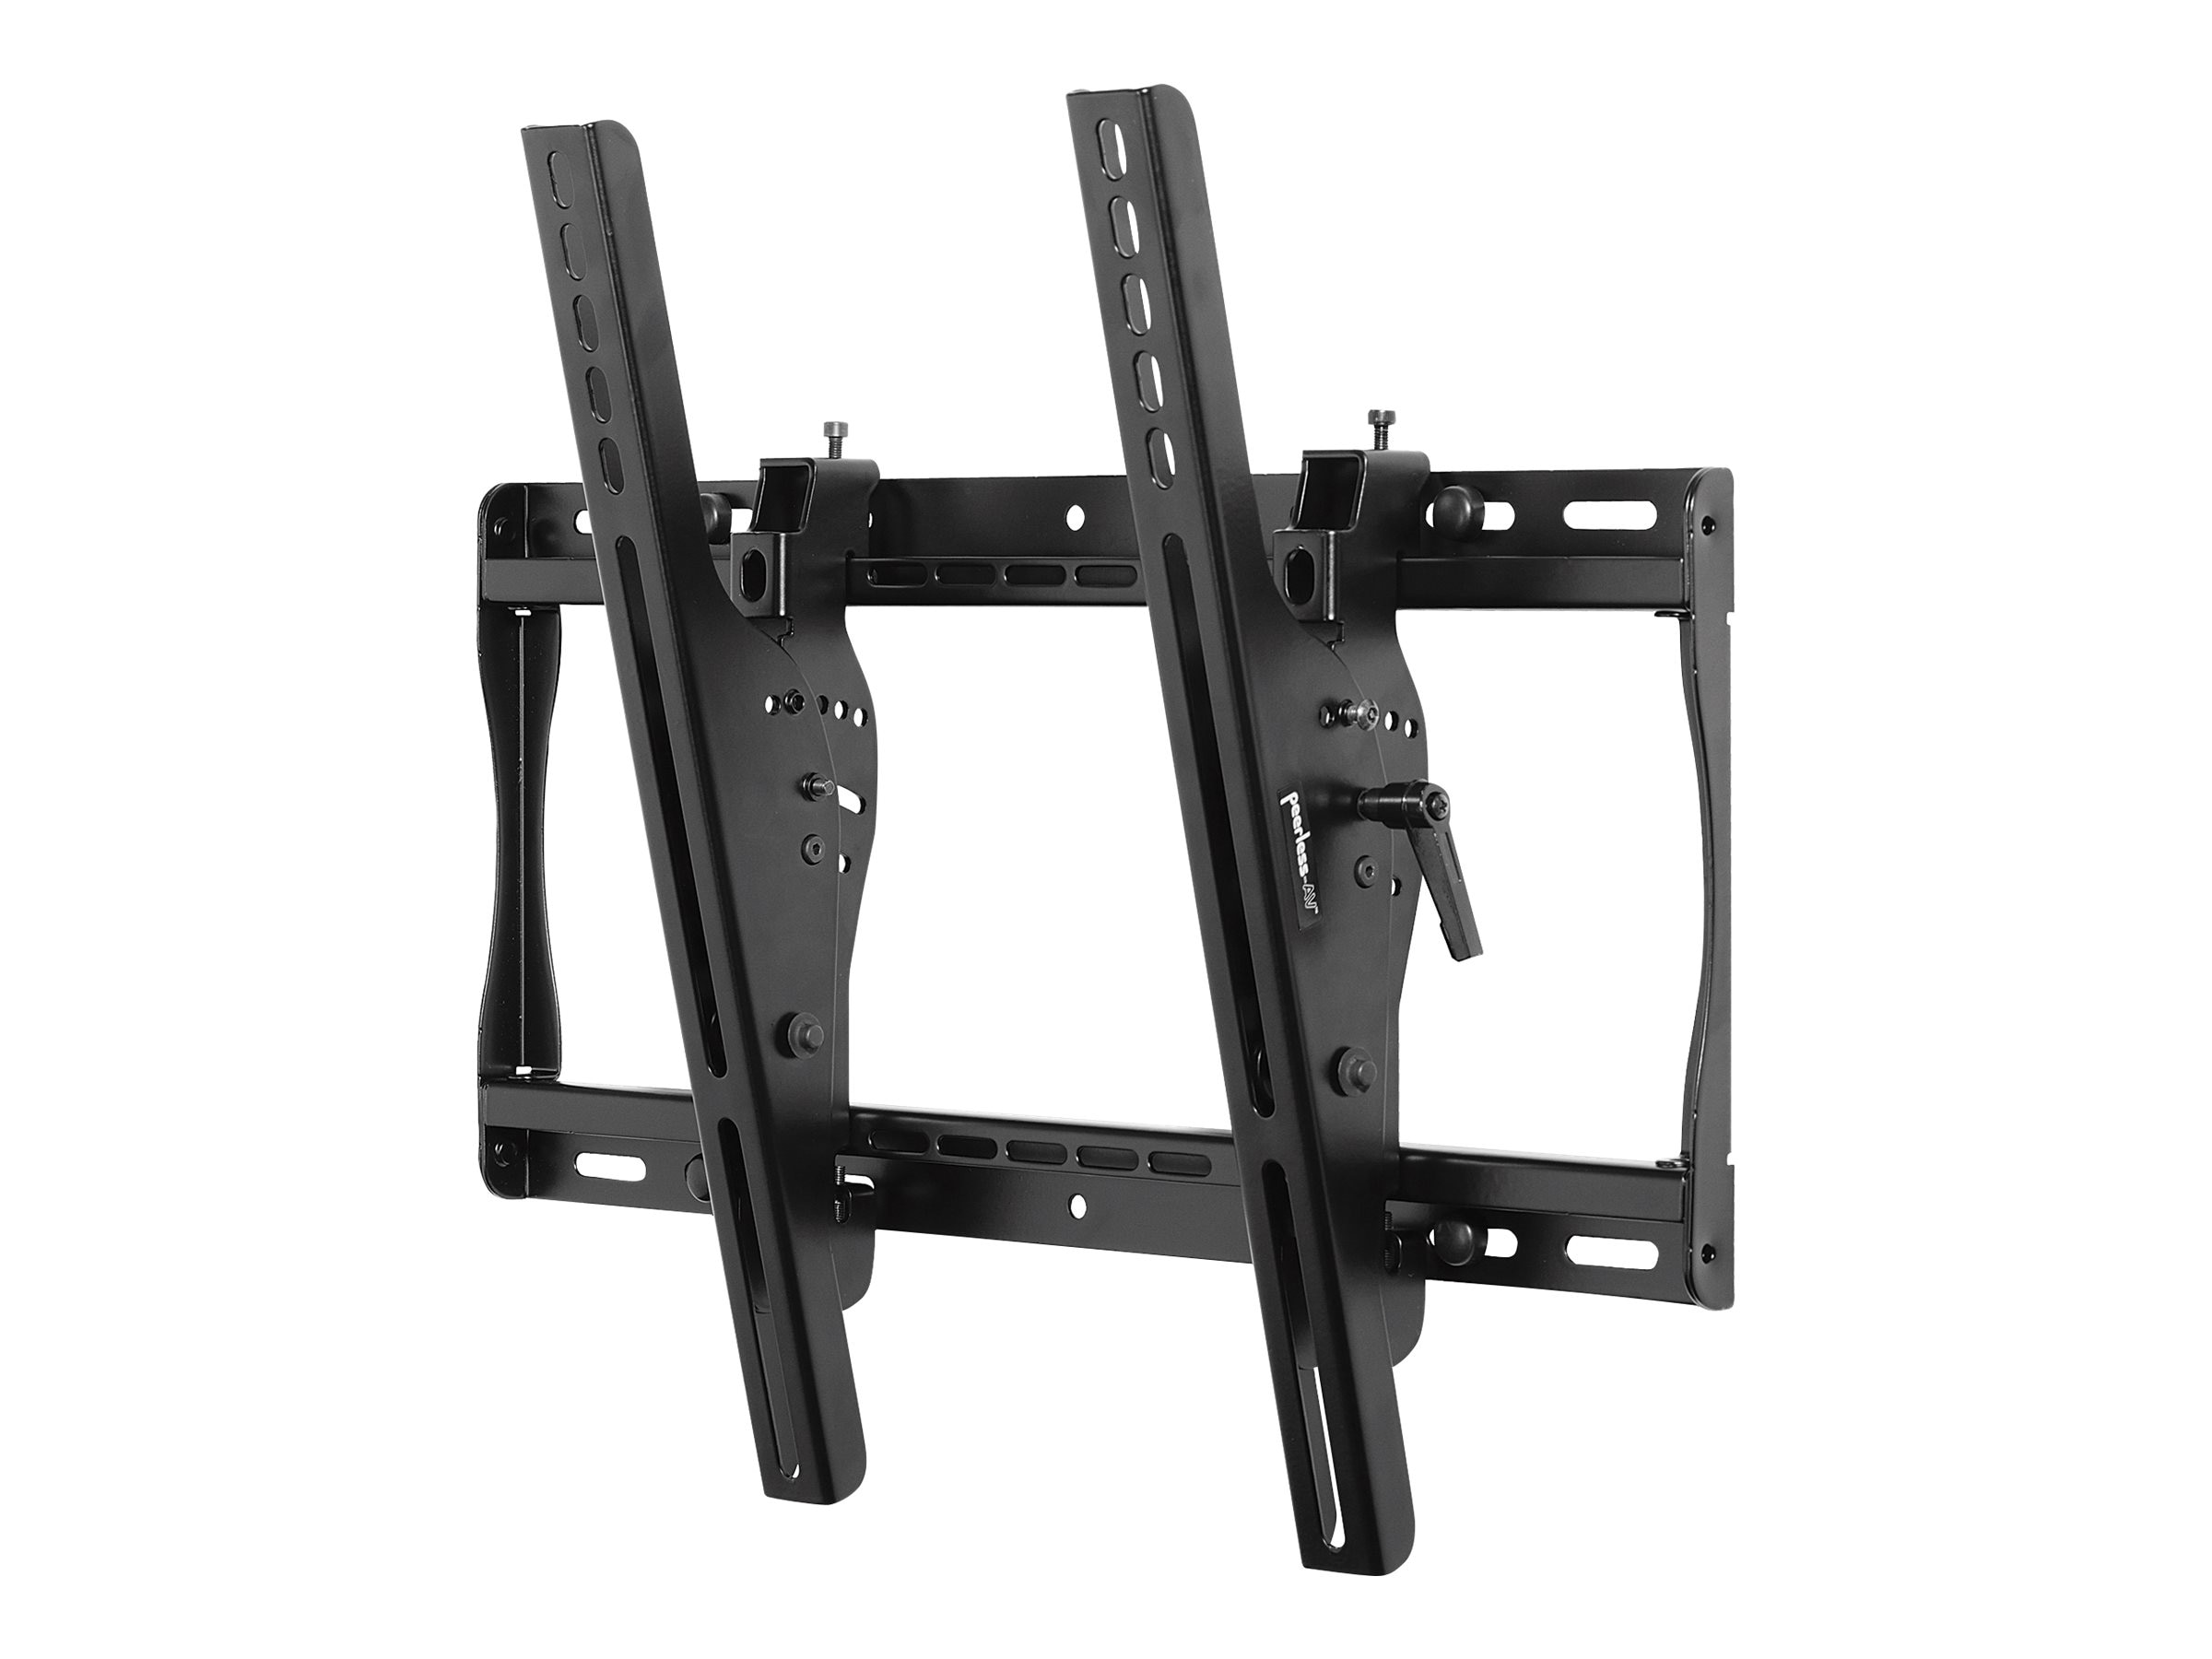 Open Box Peerless Smartmount Universal Adjustable Tilt Wall Mount for 22-46 Flat Panels, Standard Model, Black, ST640P, 16607317, Stands & Mounts - AV